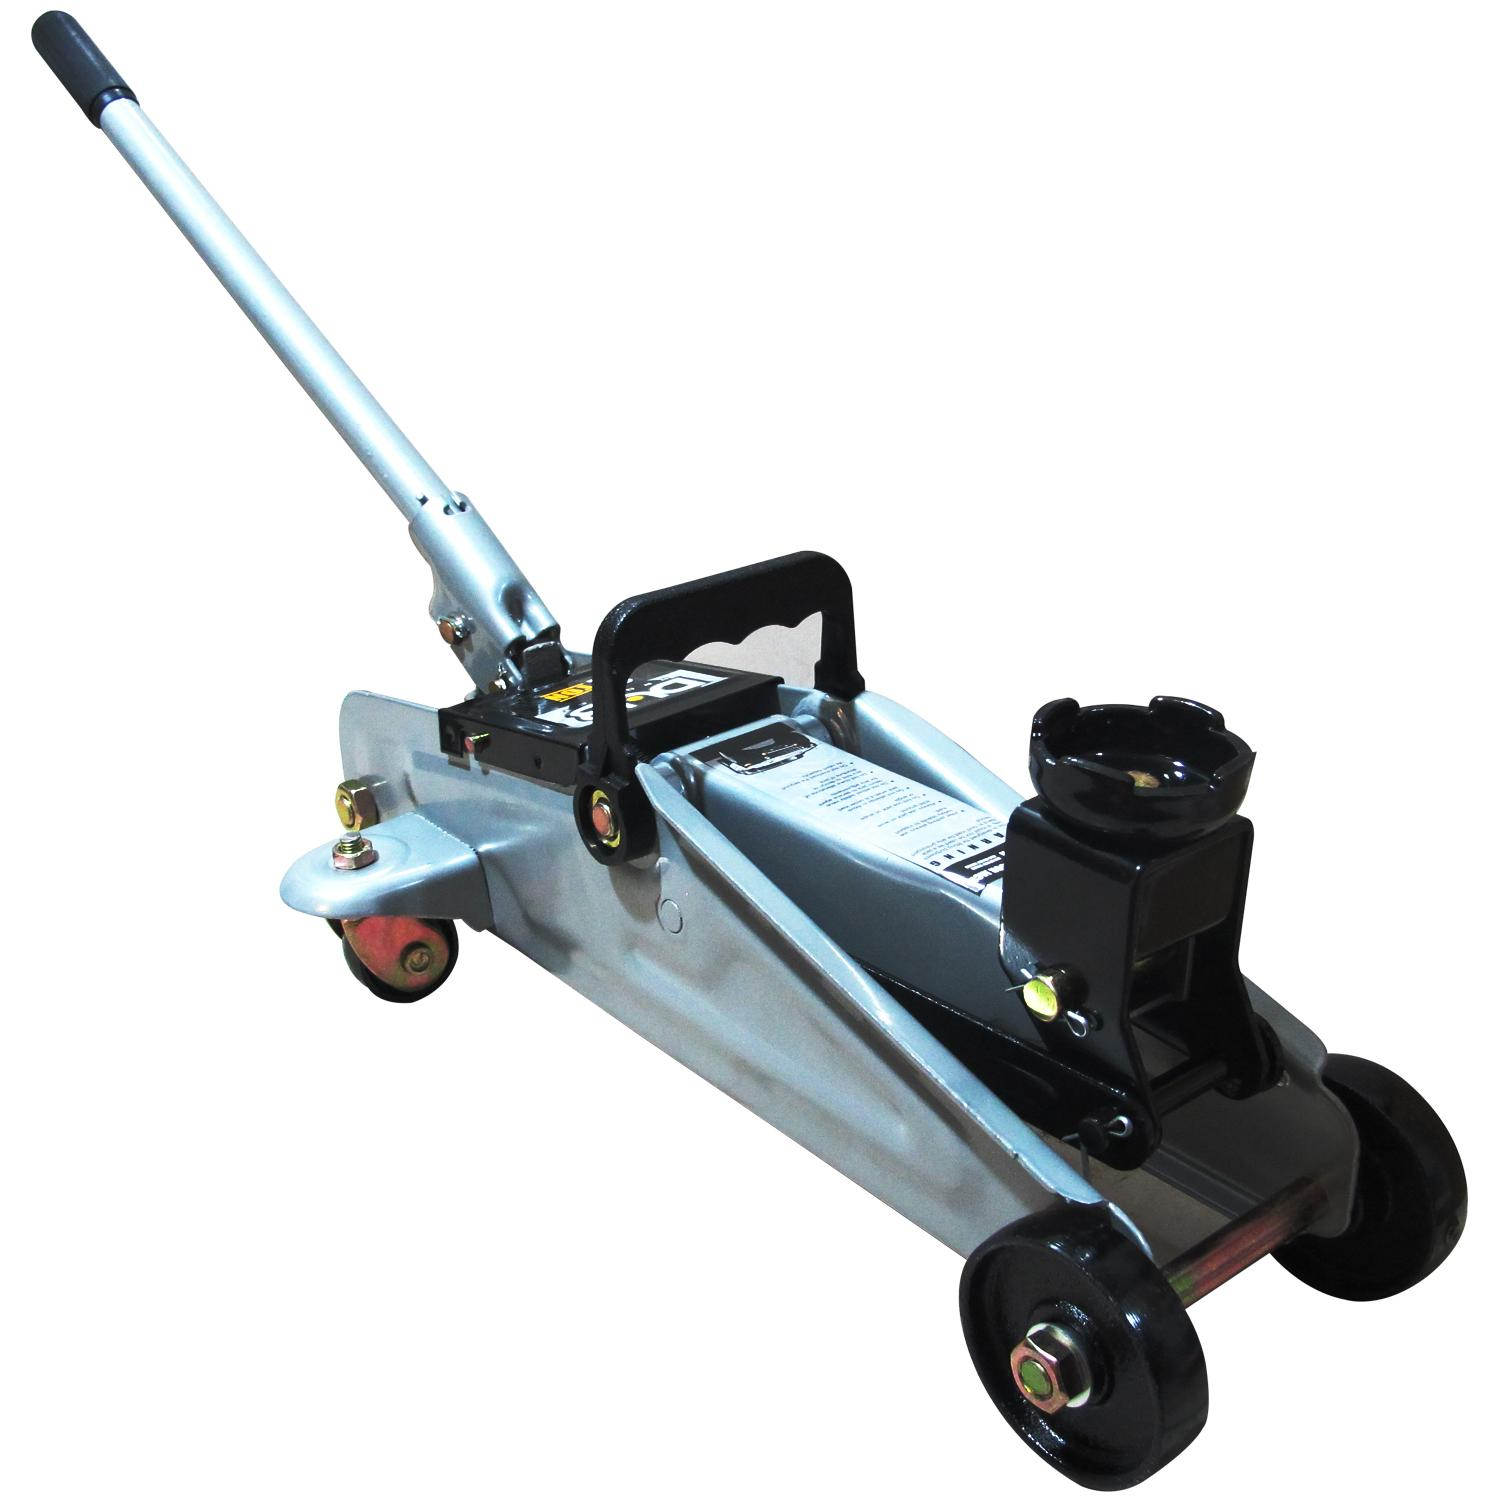 Dub Heavy Duty Floor Jack 2 Ton (black) By Blade Auto Center.